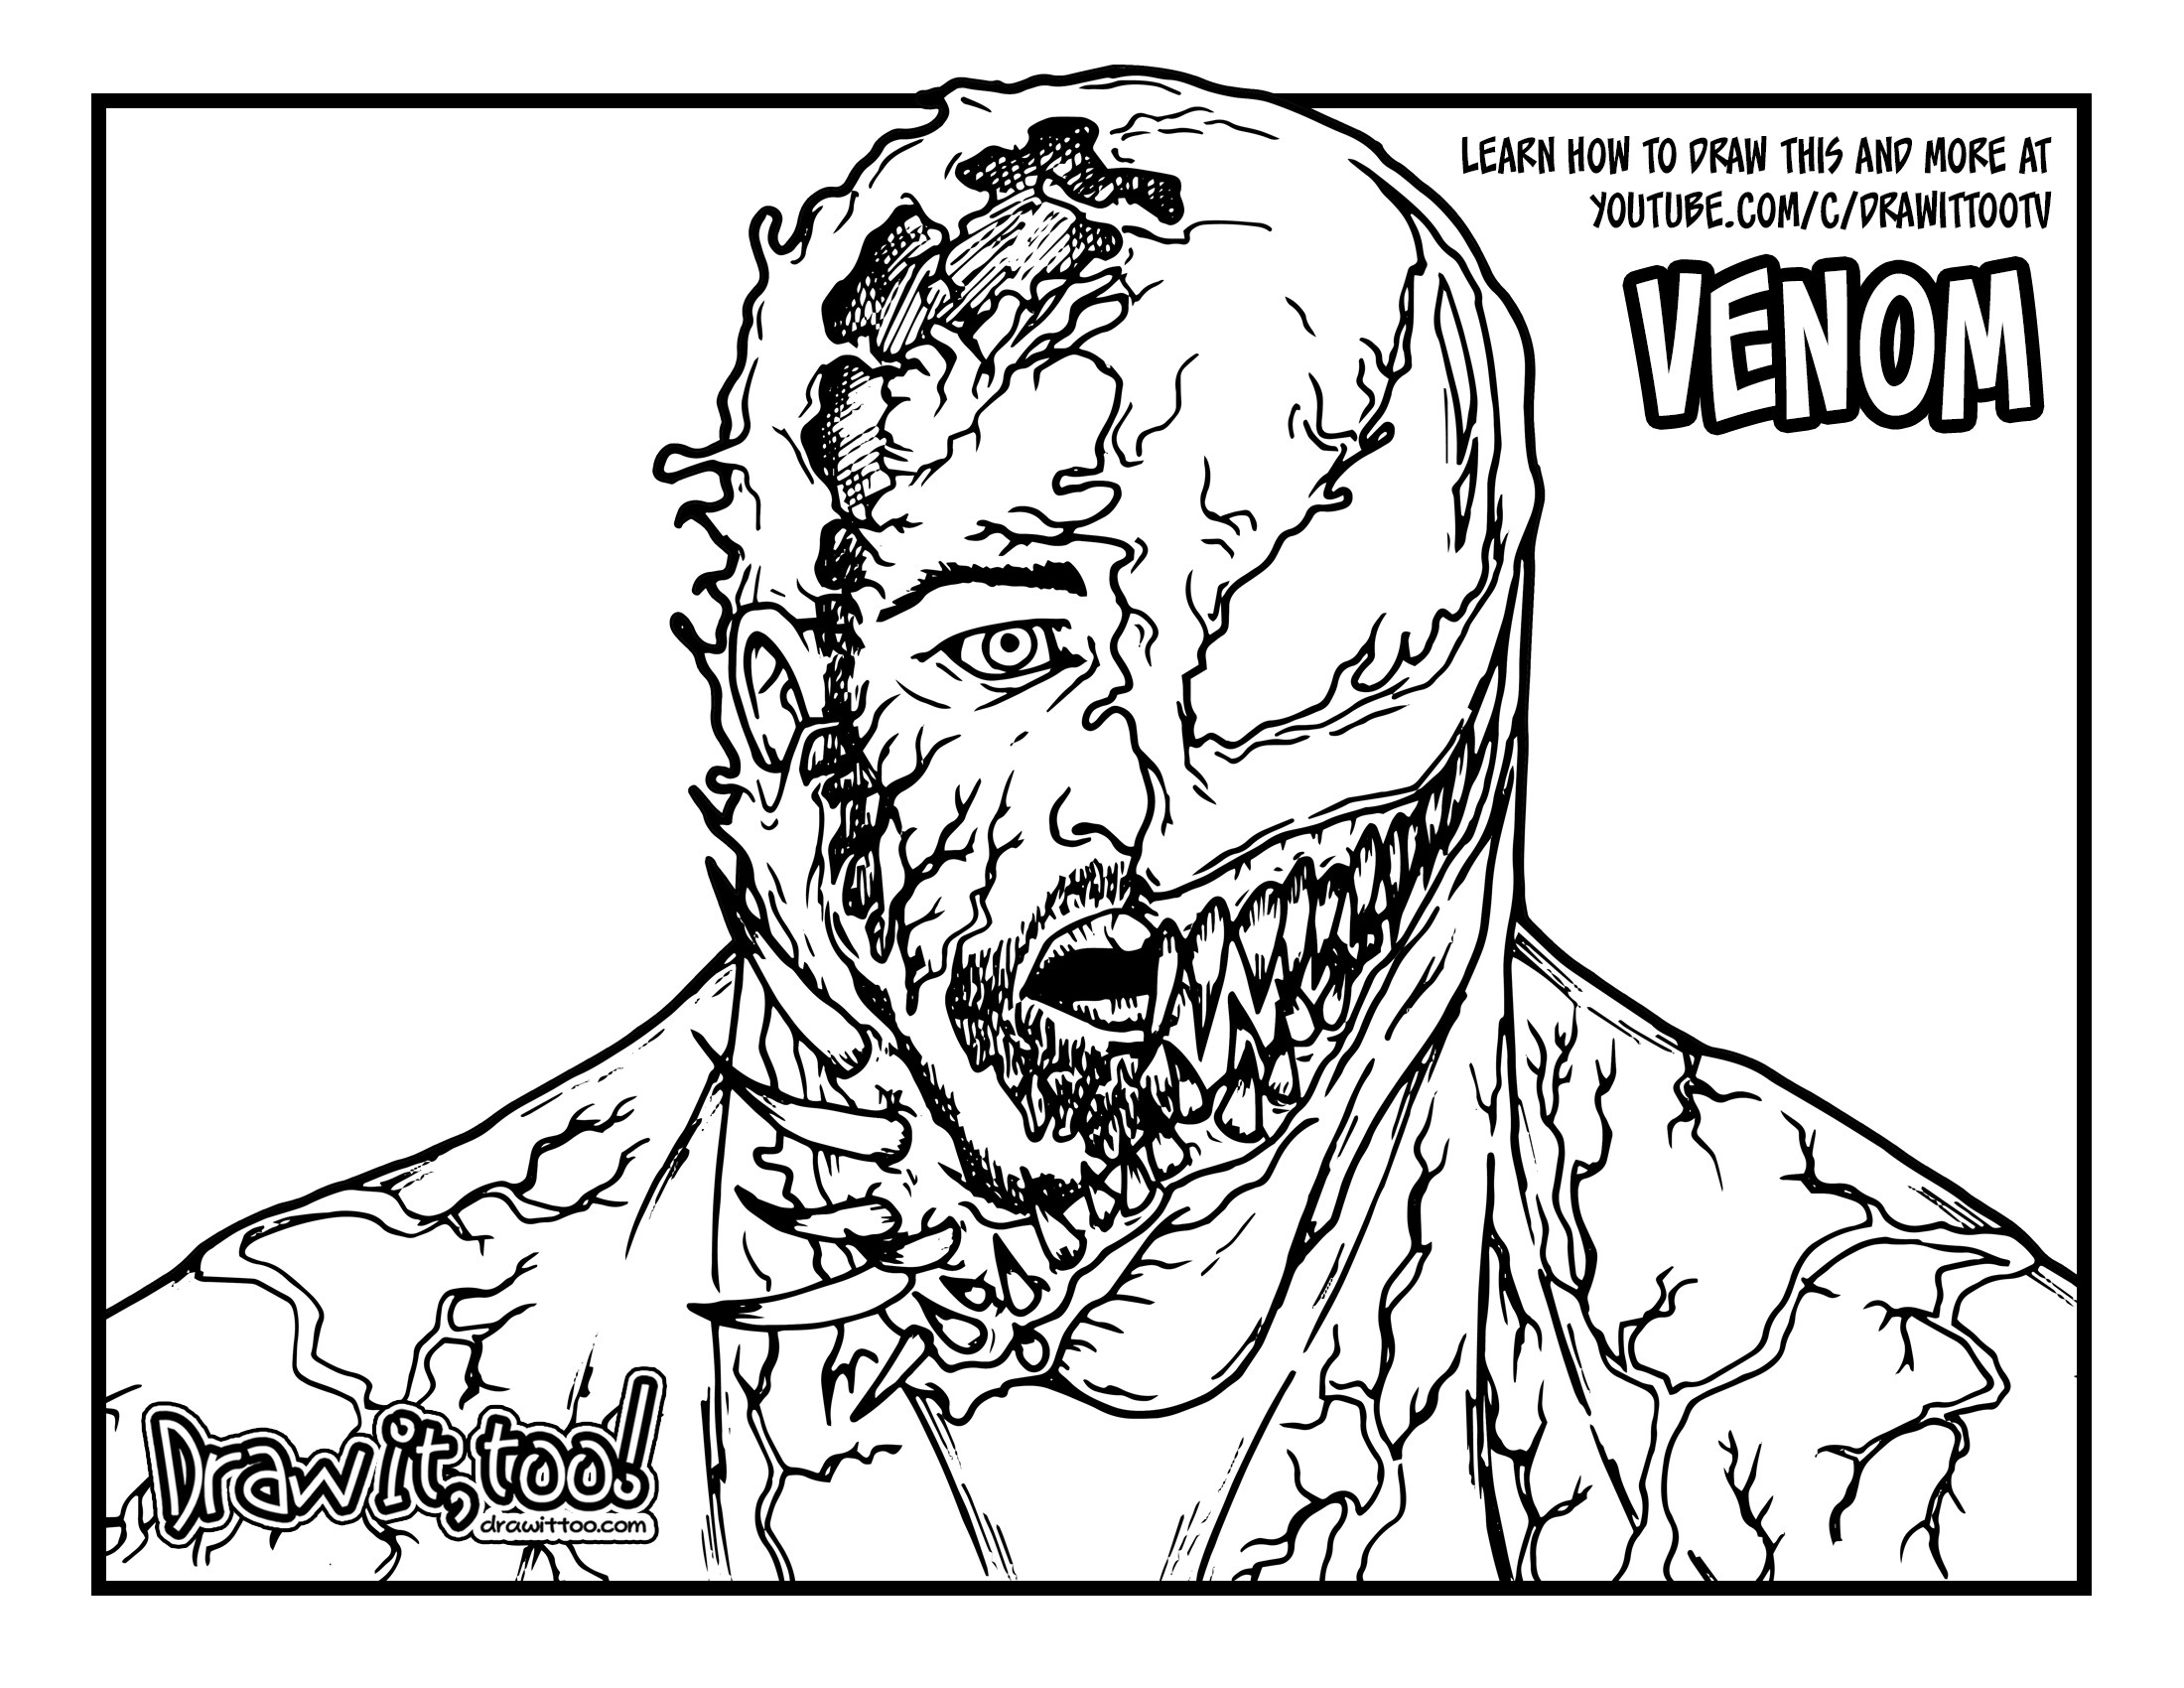 printable venom coloring pages venom face drawing at getdrawings free download venom printable coloring pages